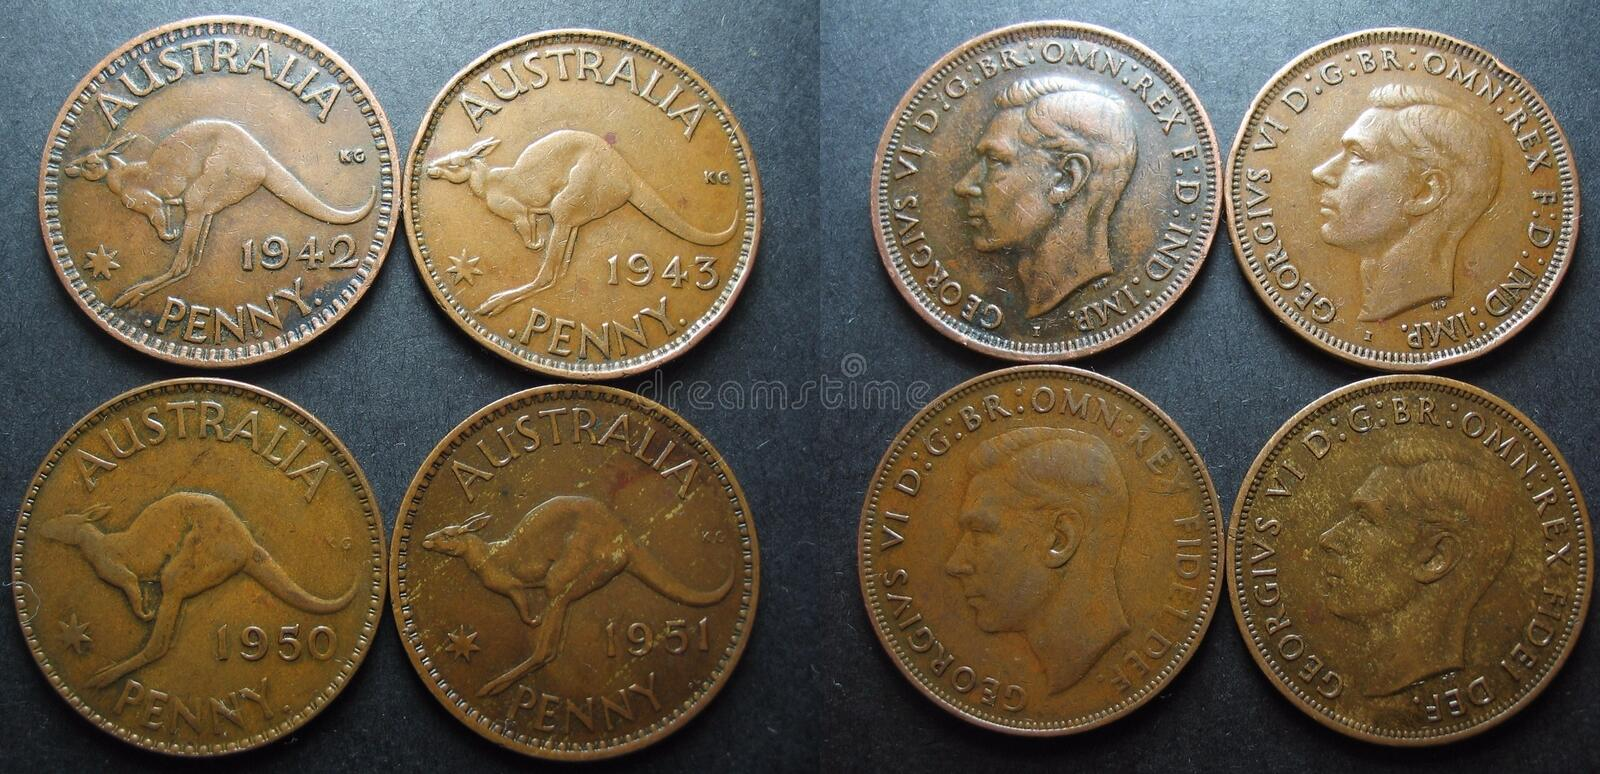 Vintage Australian One Penny Coin. Four pre-decimal vintage Australian One Penny coins. Showing both reverse and obverse sides royalty free stock image